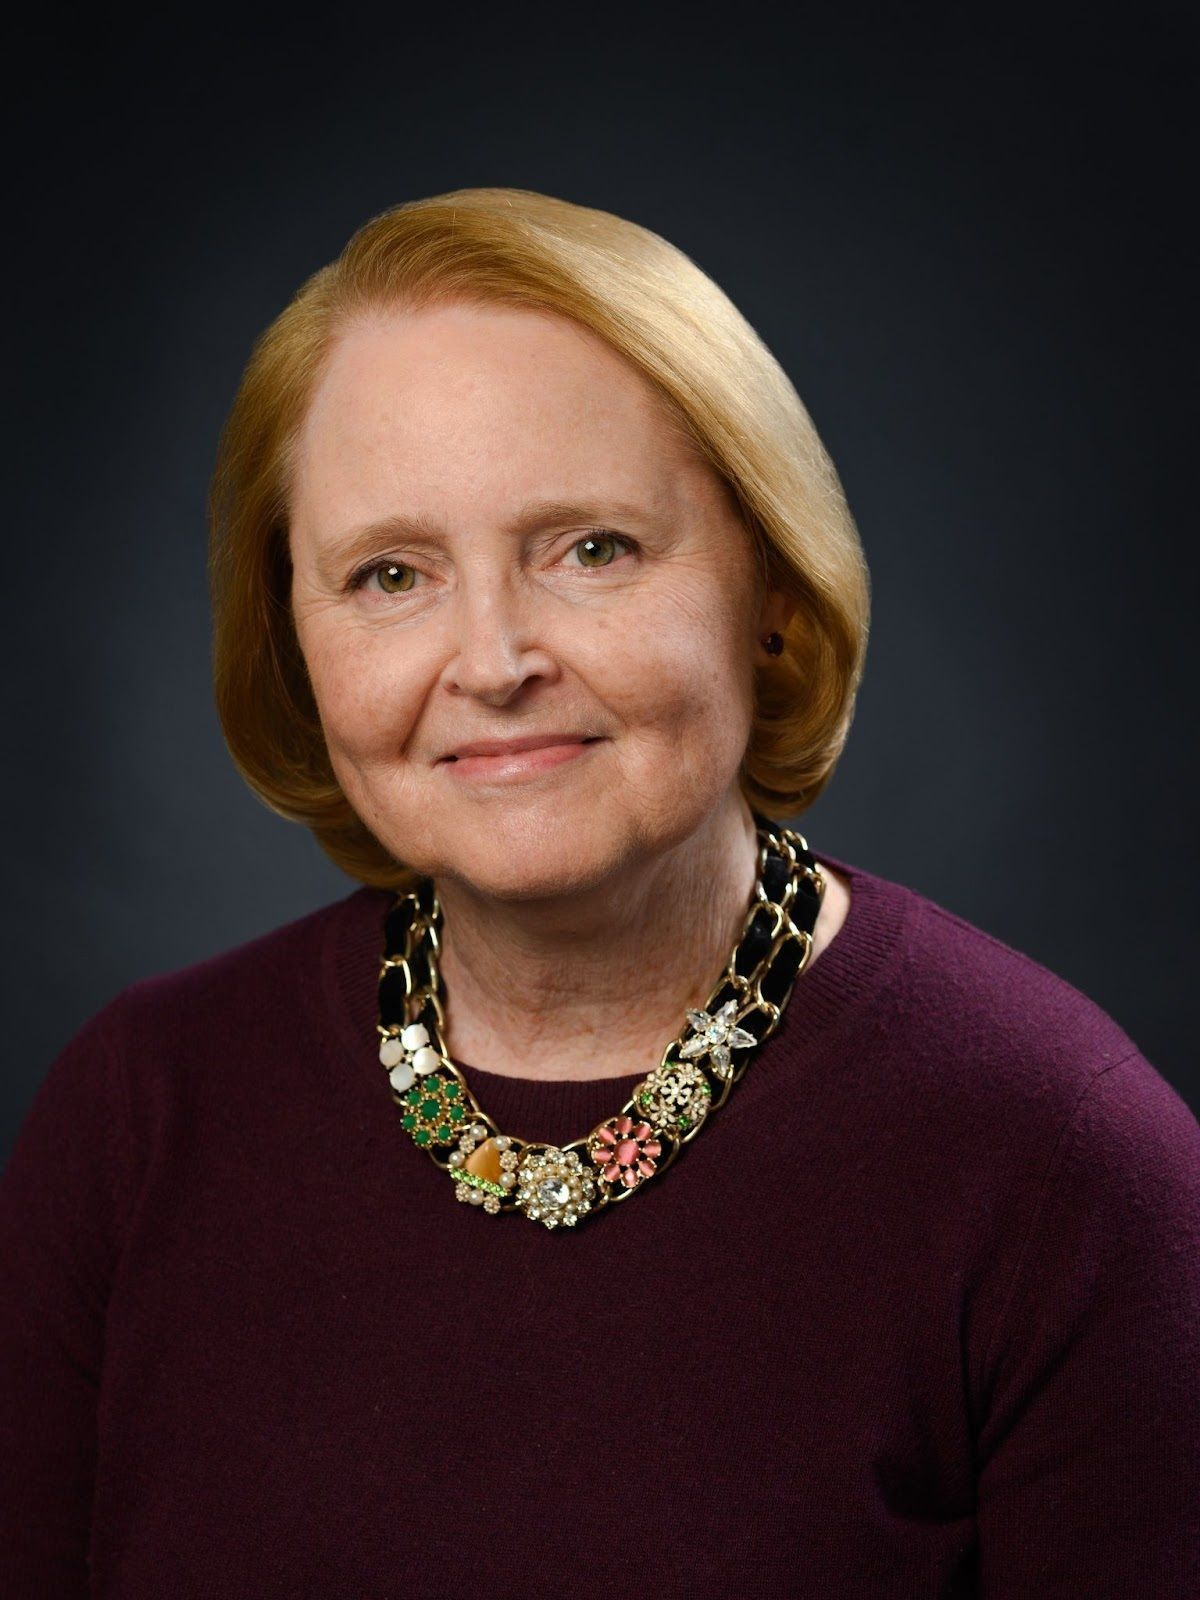 Dr. Gayle Seymour is the founding faculty advisor for SftA. She is Professor of Art History and Associate Dean of the College of Arts, Humanities, and Social Sciences